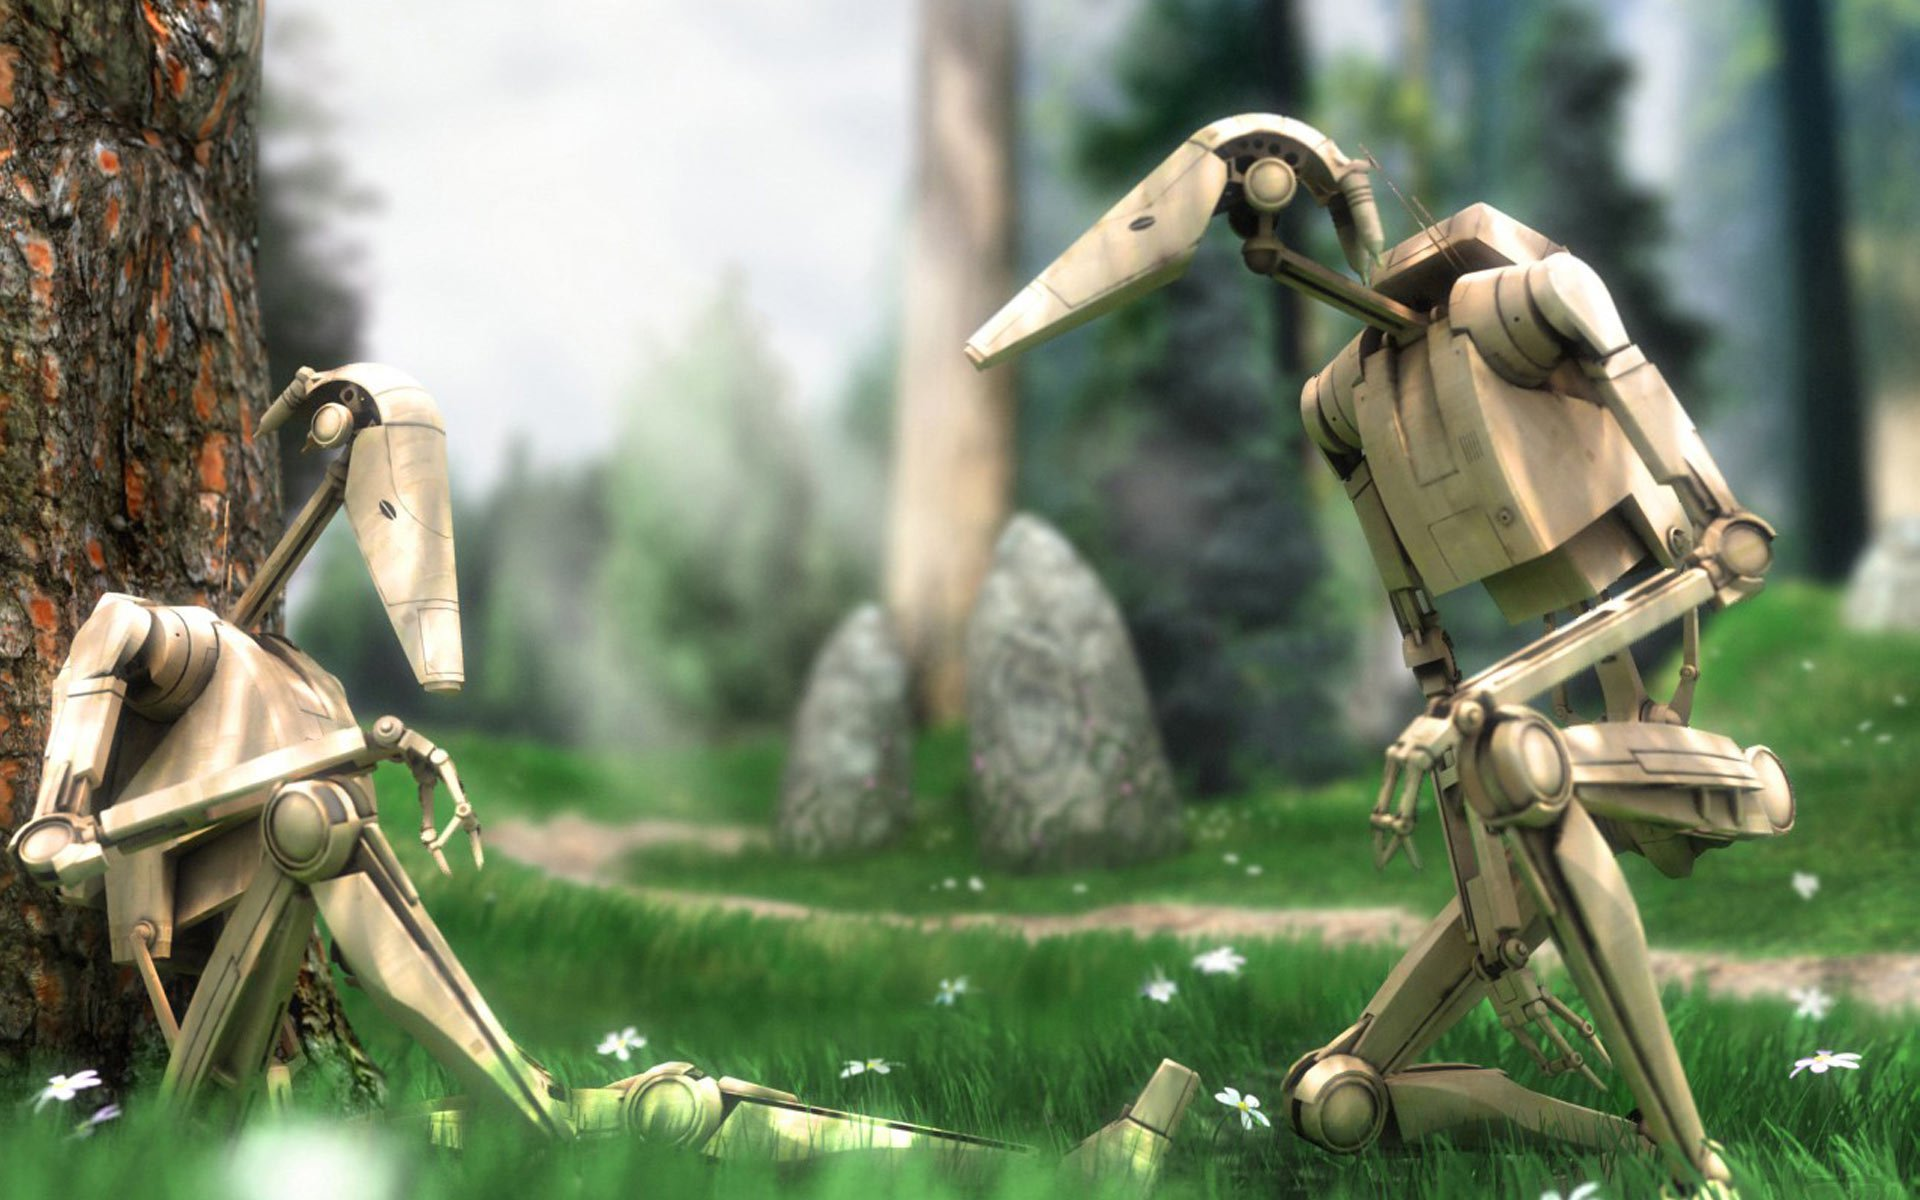 9 Battle Droid Star Wars Hd Wallpapers Background Images Wallpaper Abyss